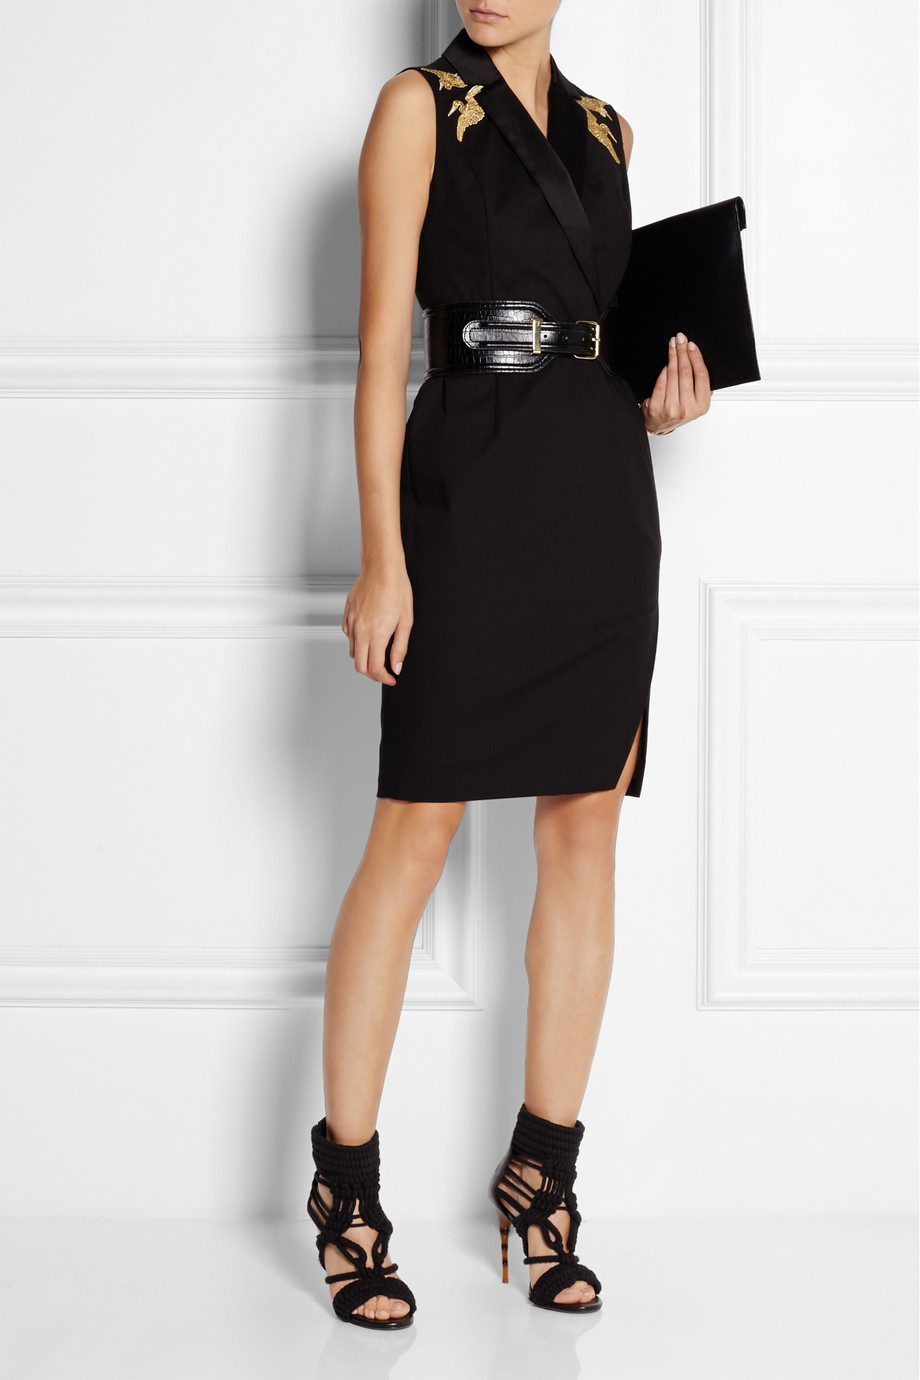 Embroidered cotton-blend twill dress,  £50